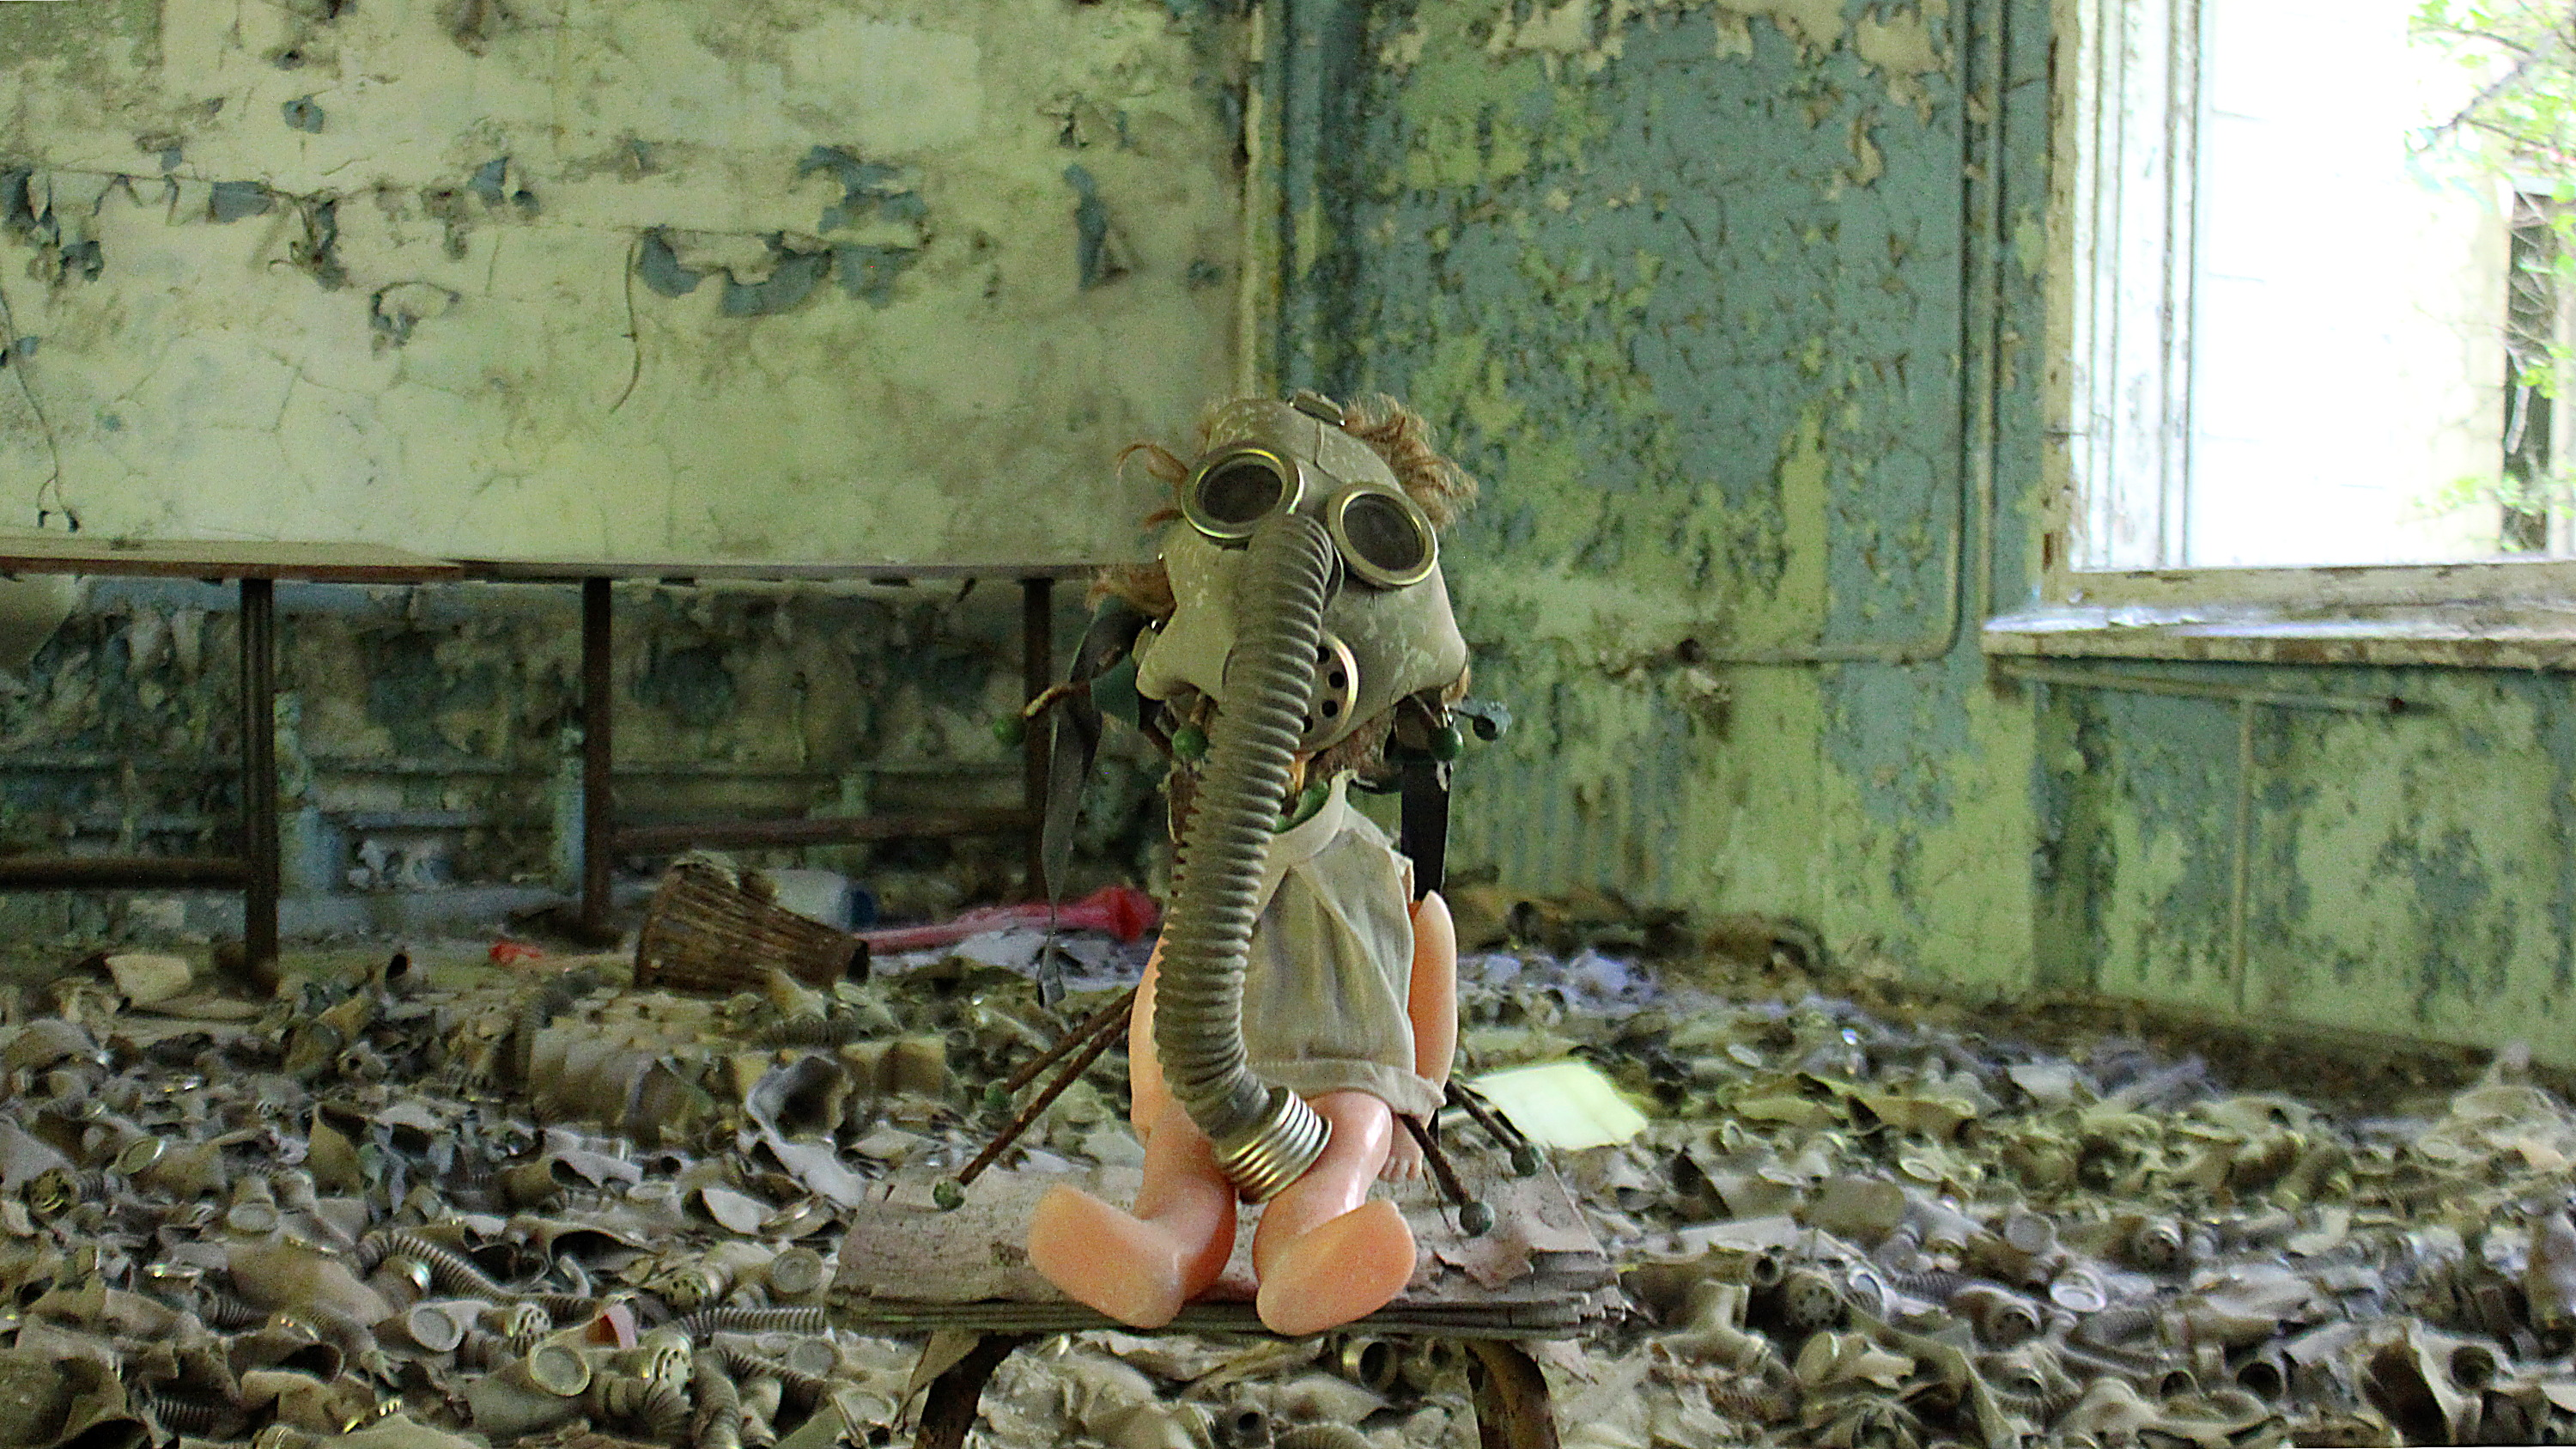 A creepy doll with a gas mask sitting on a chair in a school in Pripyat with more gas masks in the background.